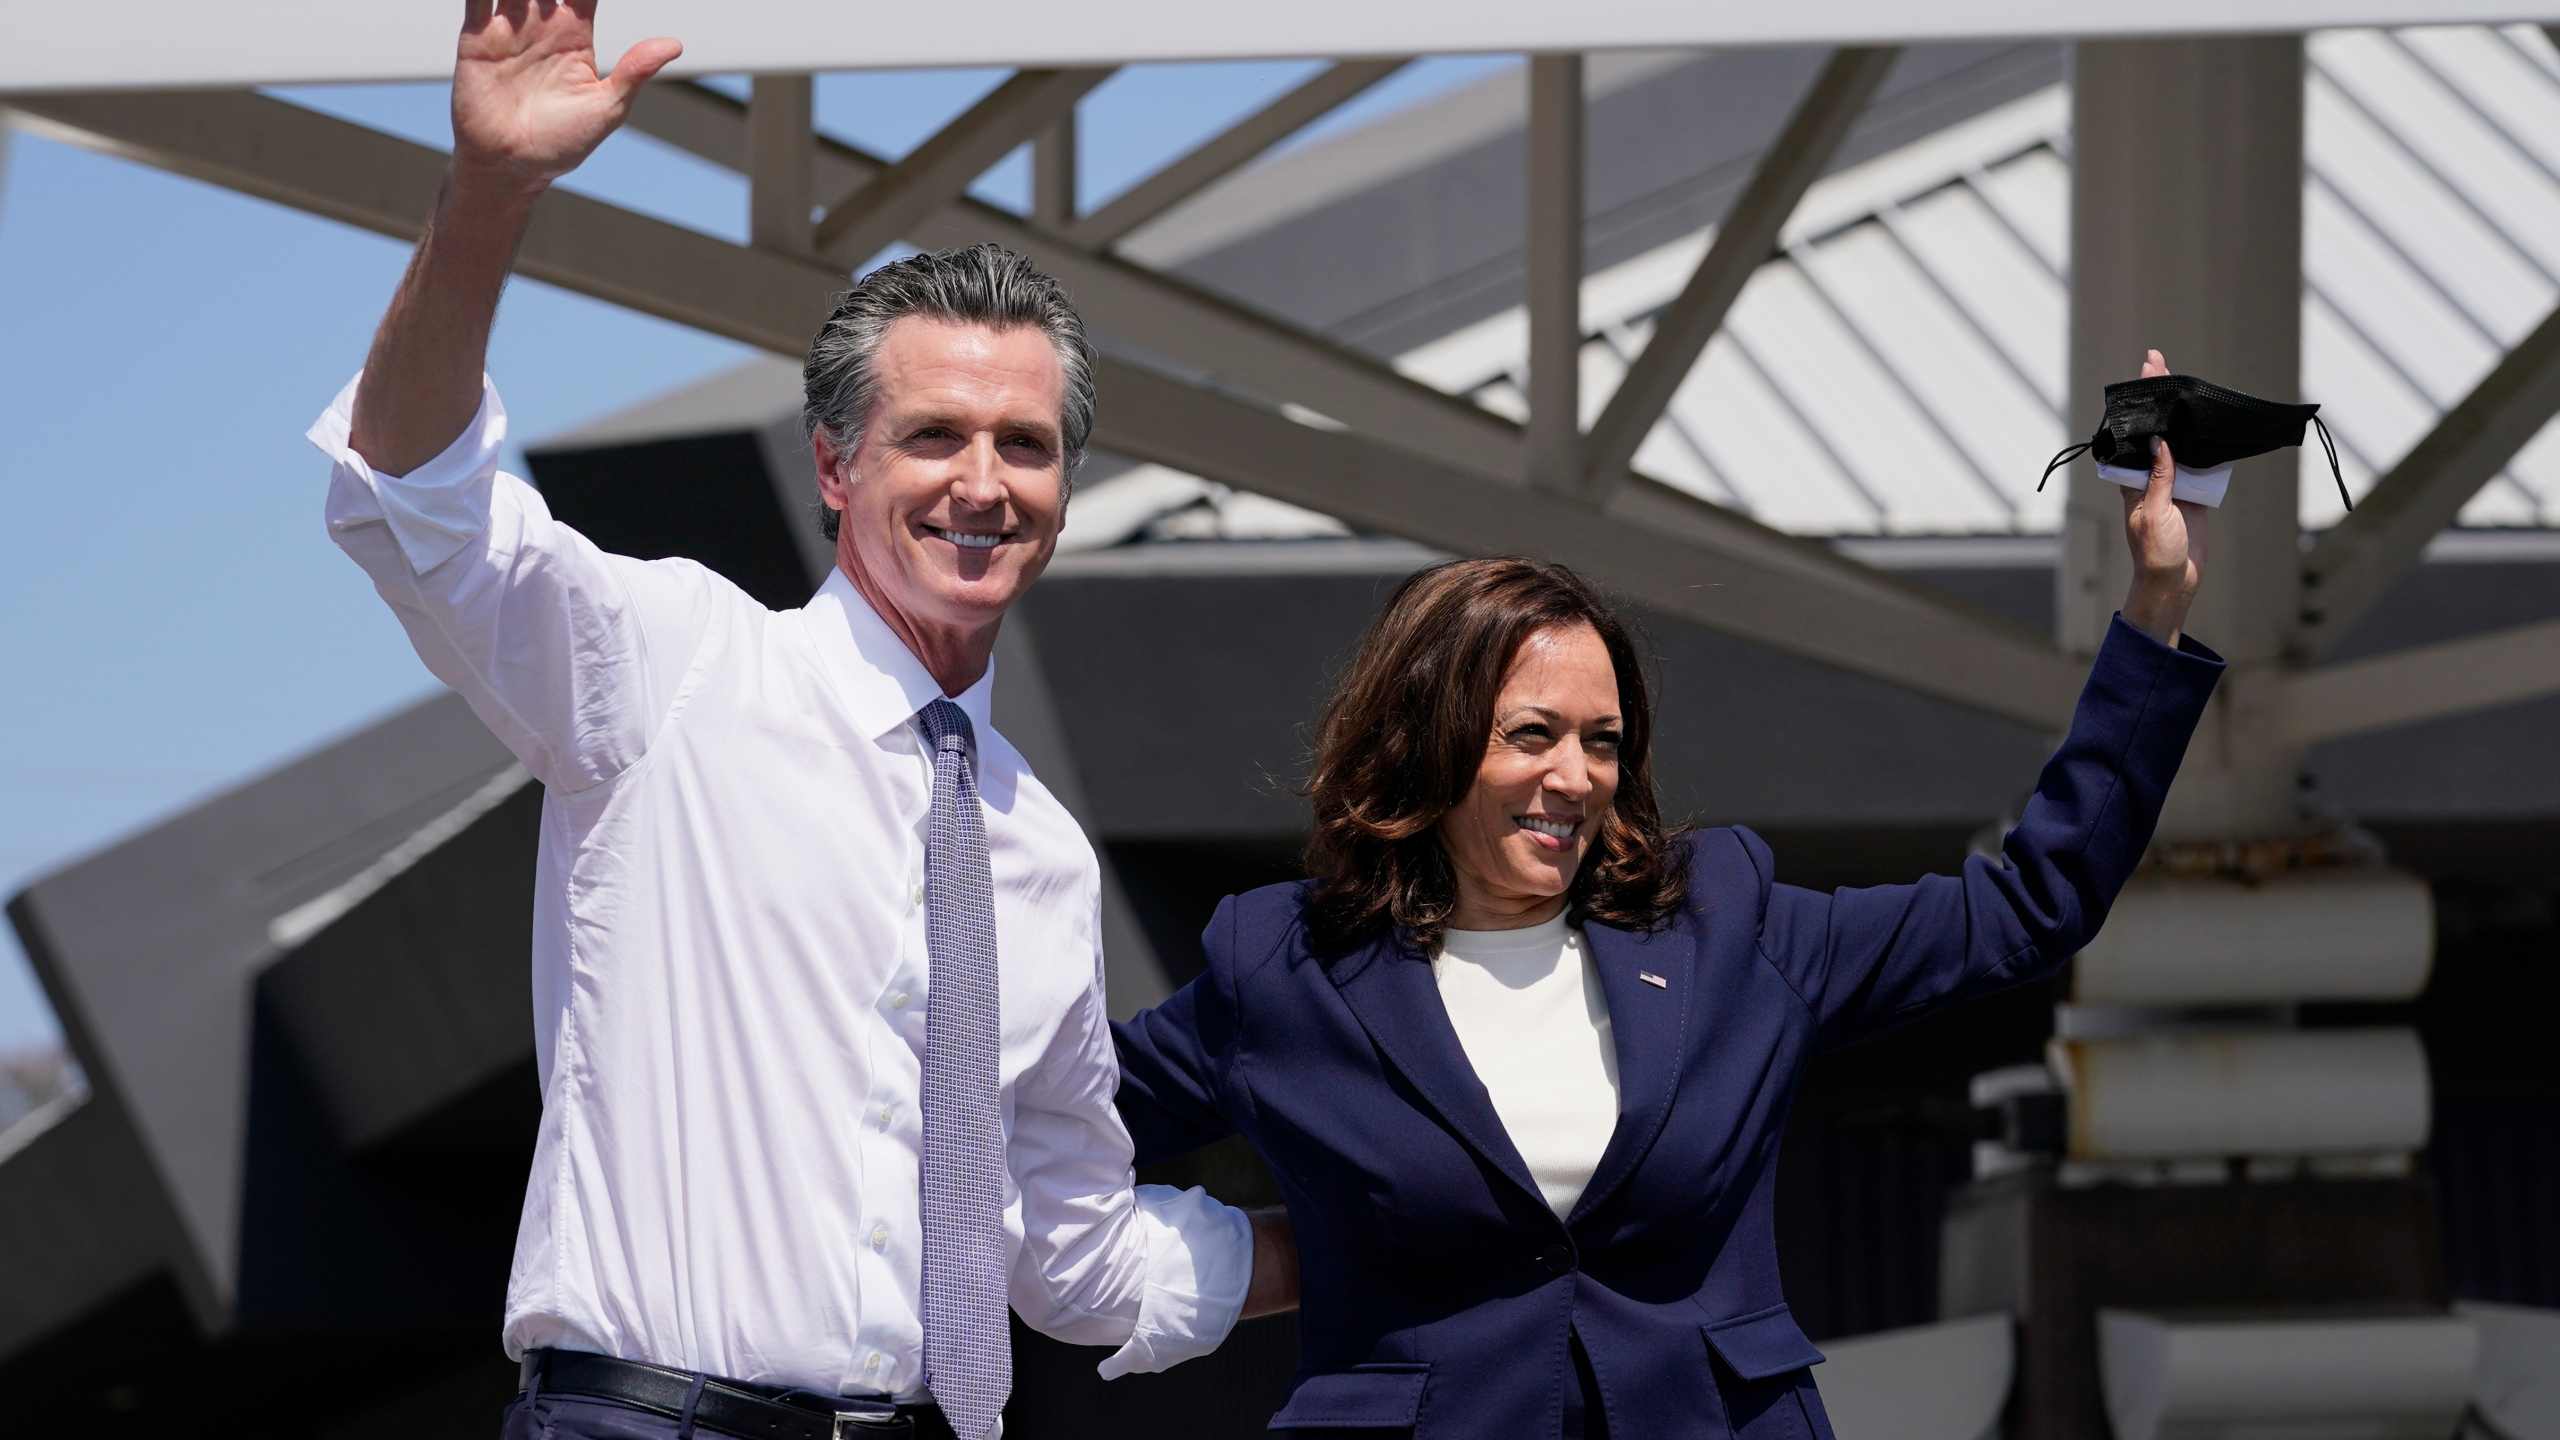 California Gov. Gavin Newsom and Vice President Kamala Harris wave during a campaign event at the IBEW-NECA Joint Apprenticeship Training Center in San Leandro, Calif. on Sept. 8, 2021. (AP Photo/Carolyn Kaster)